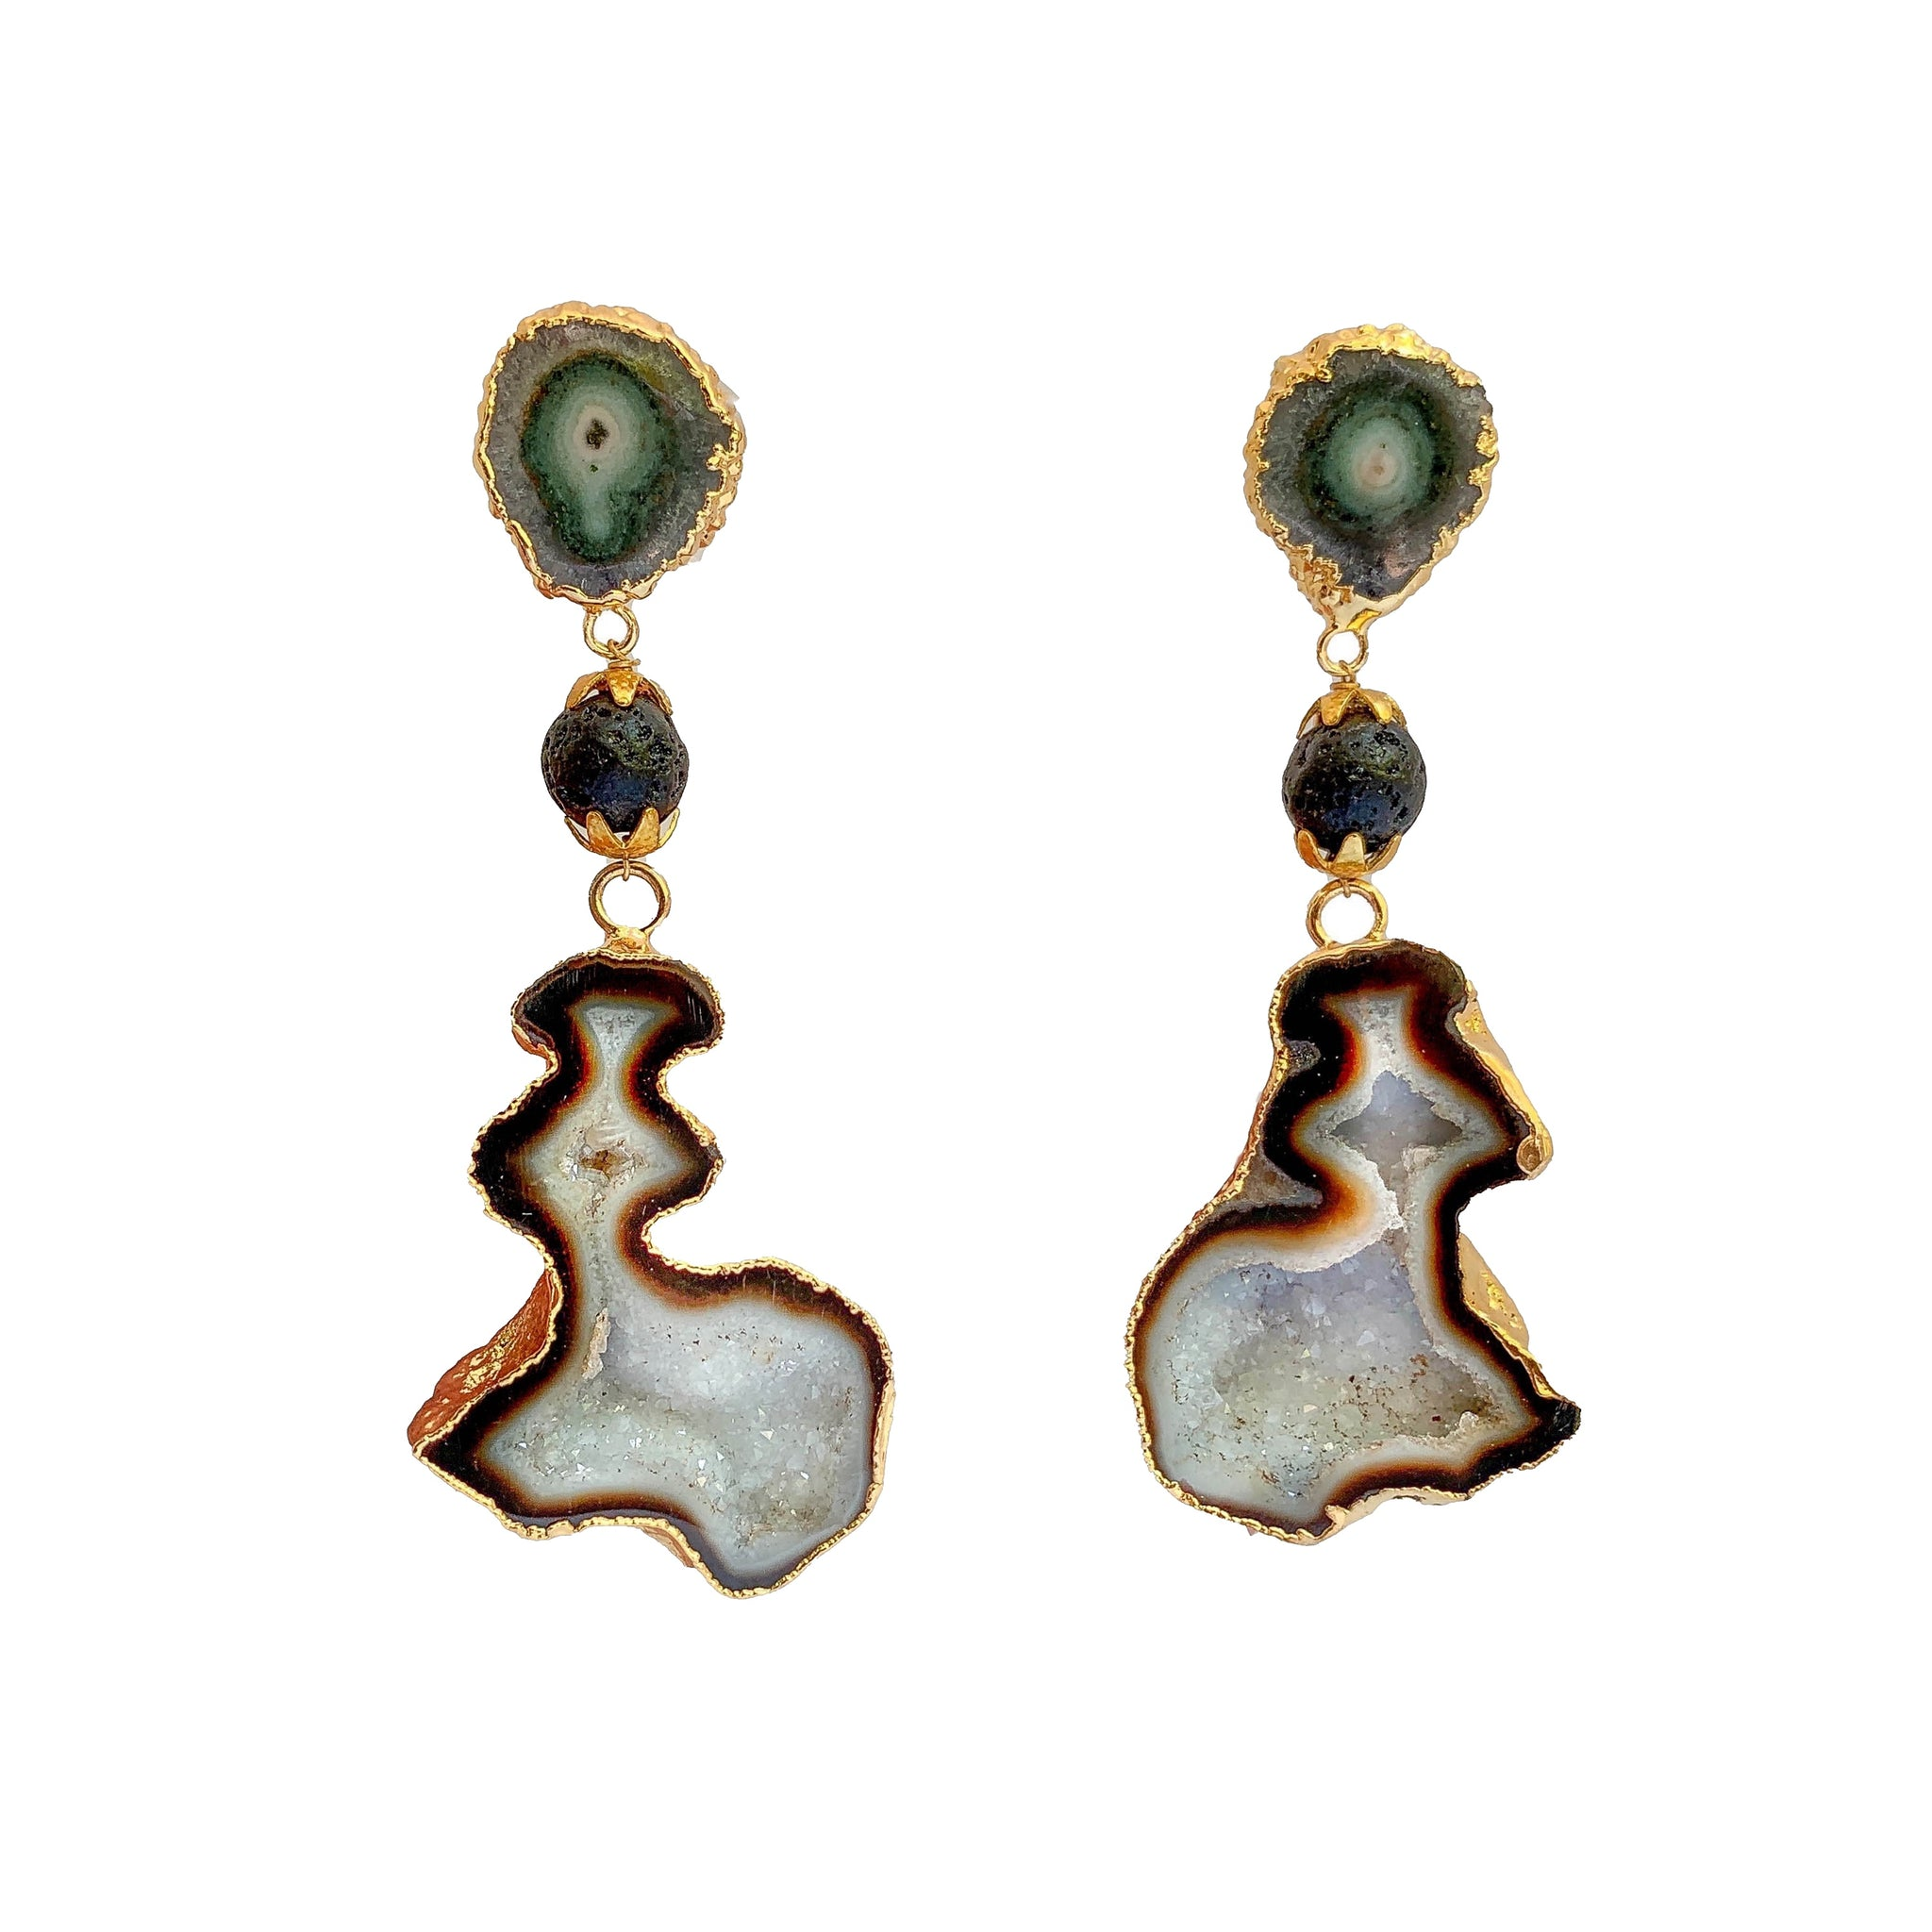 Handmade Gemstone Earrings | Luxury Gold Plated Earrings Artisan Drop Earrings by Tanya Litkovska